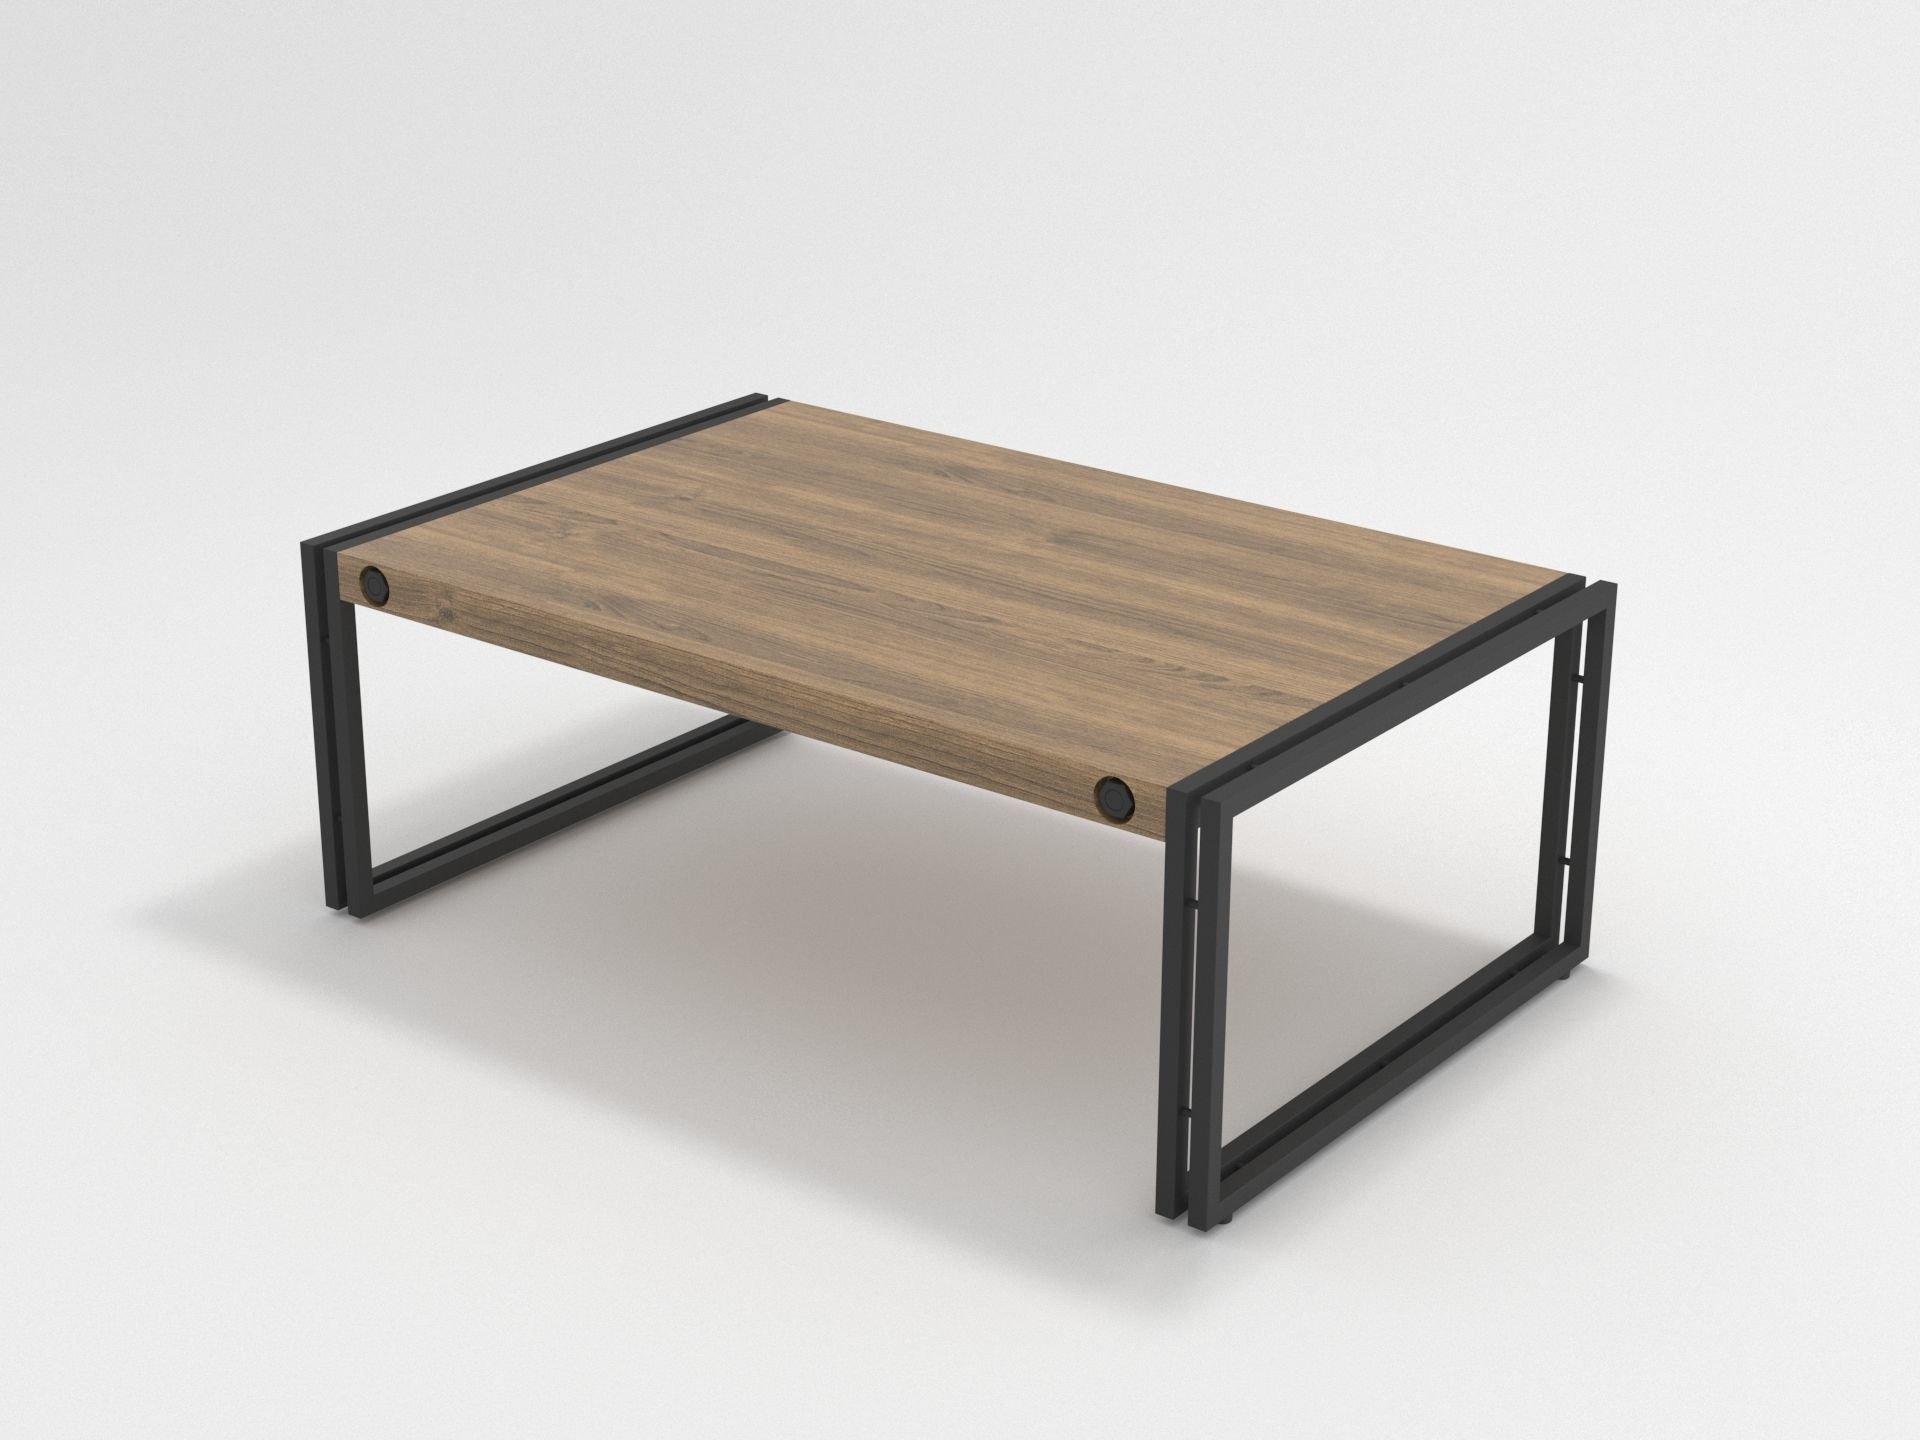 industrial wooden coffee table metal frame coffee table 3d model